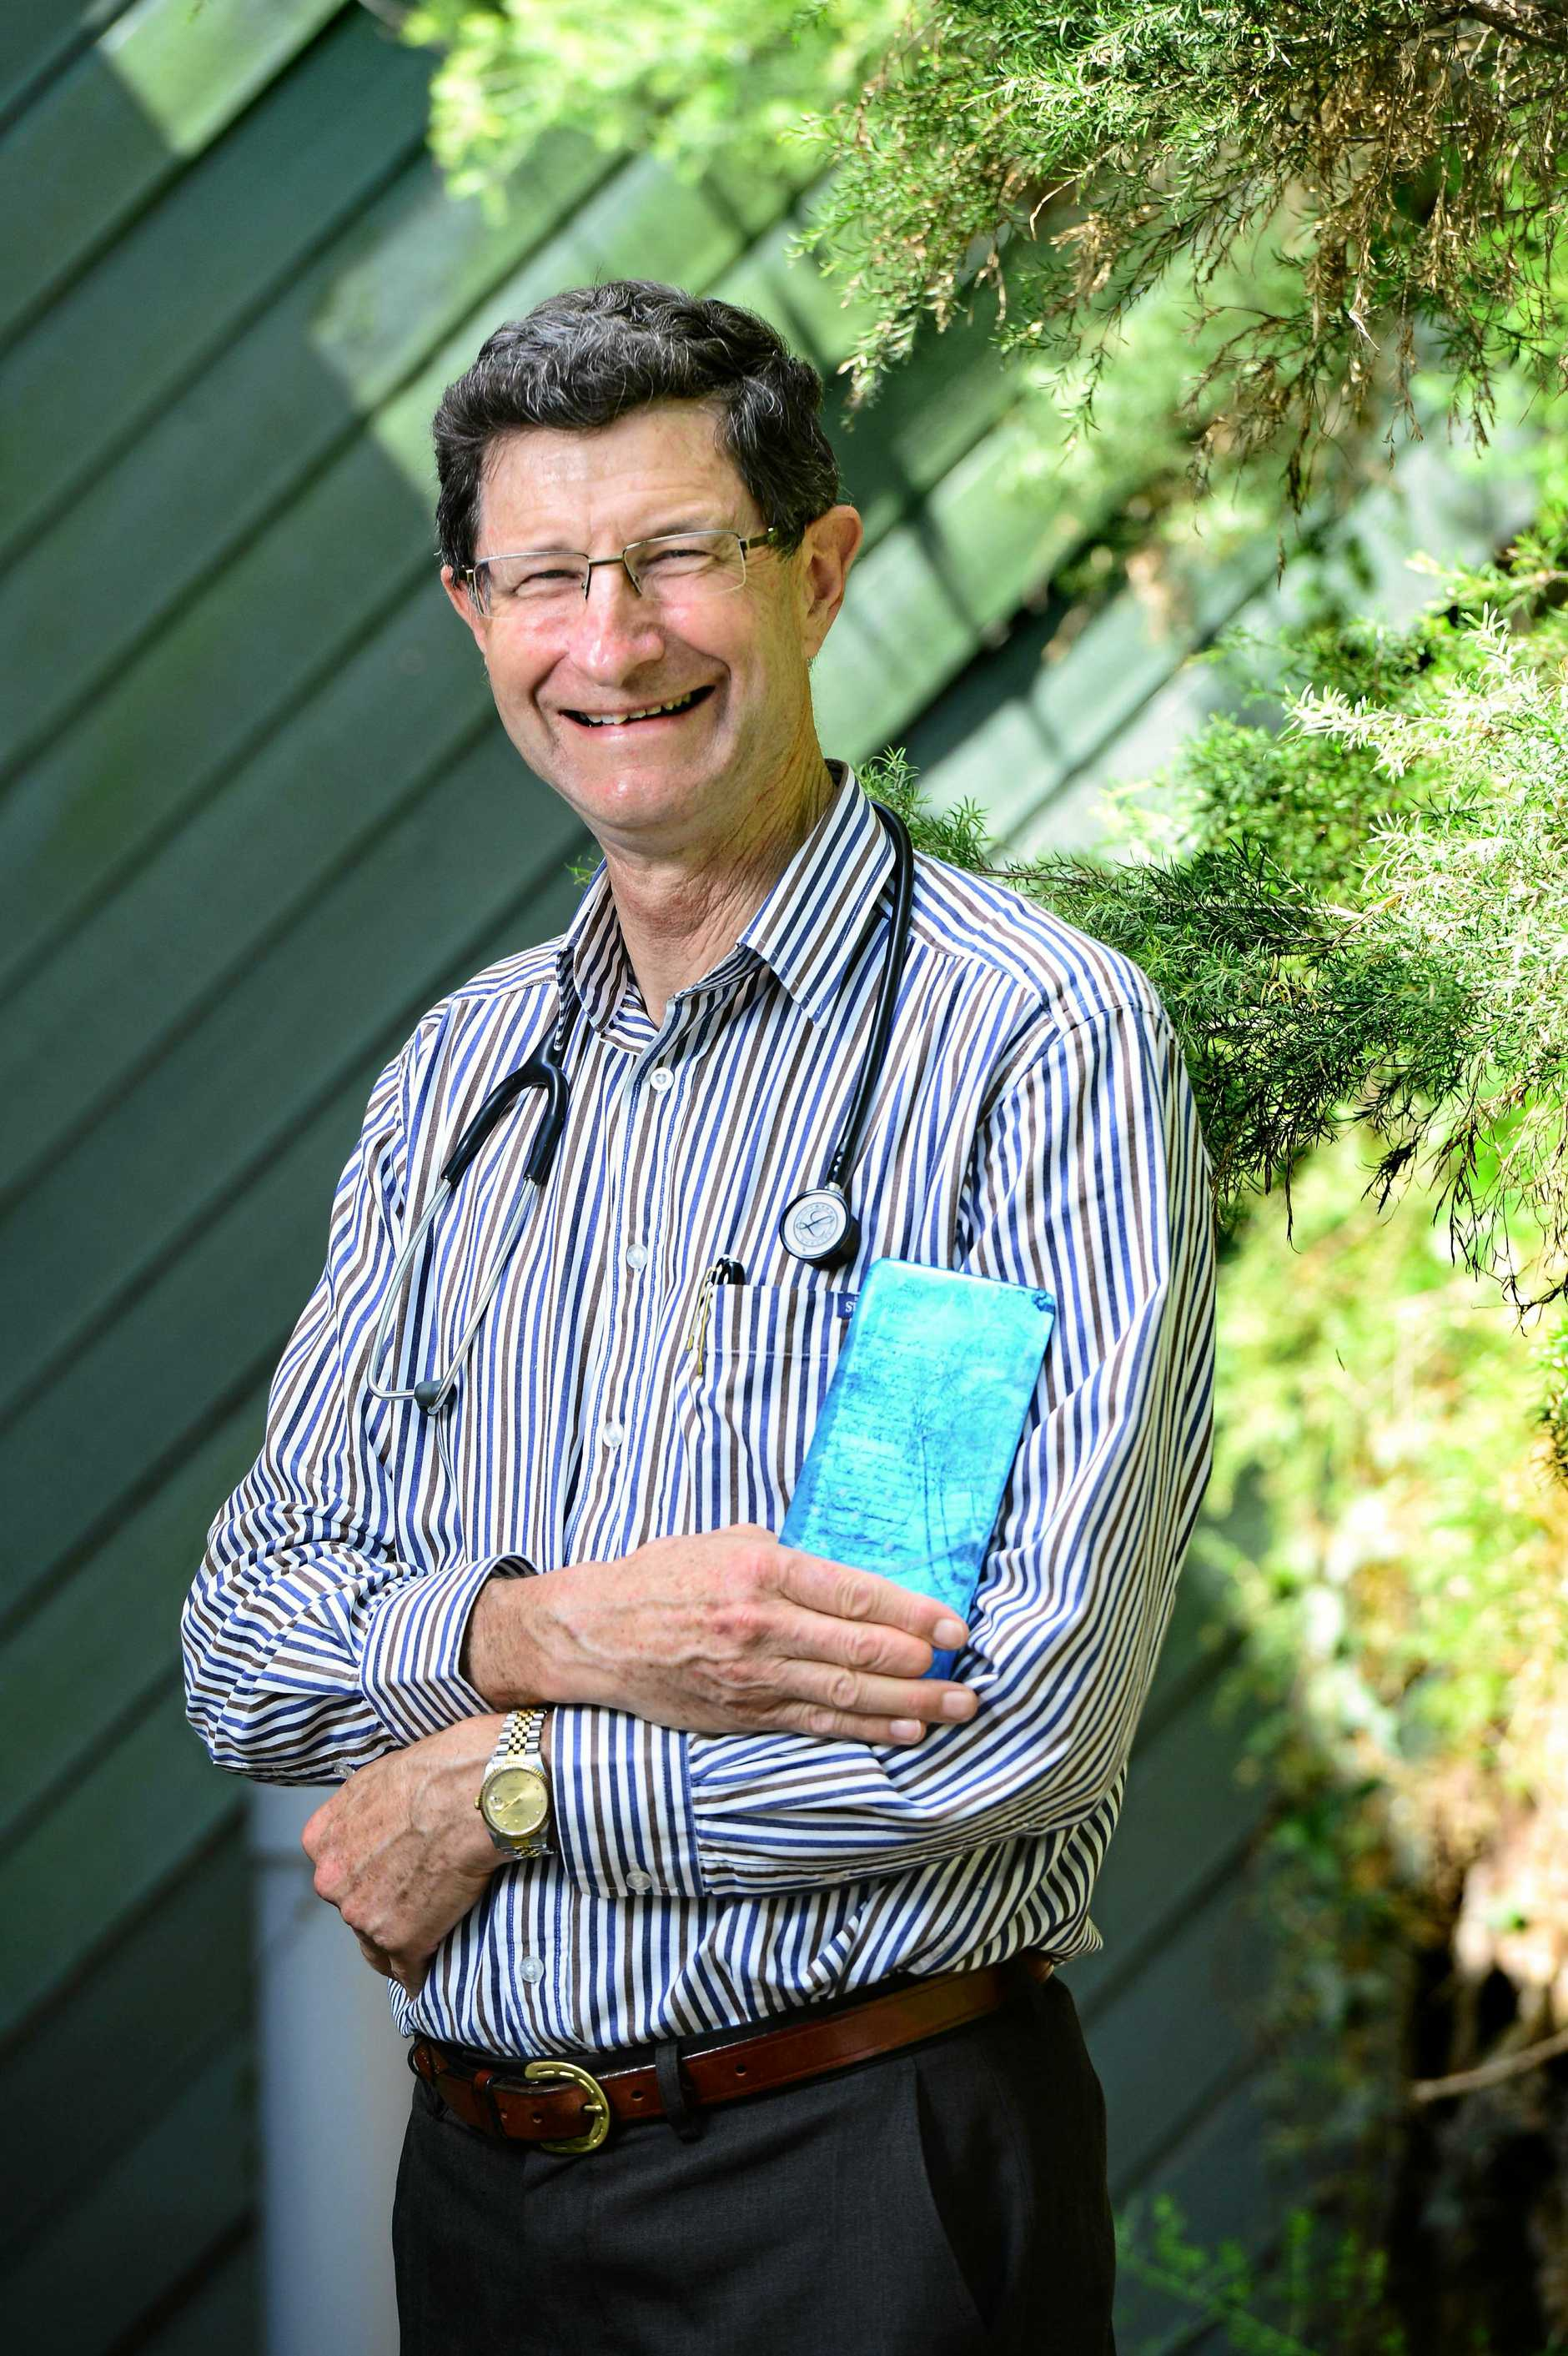 A medical practitioner specialising in child health, Dr Robert McGregor has made an outstanding contribution to Queensland's community. Bob has devoted nearly four decades to his role as consultant paediatrician at Ipswich Hospital.